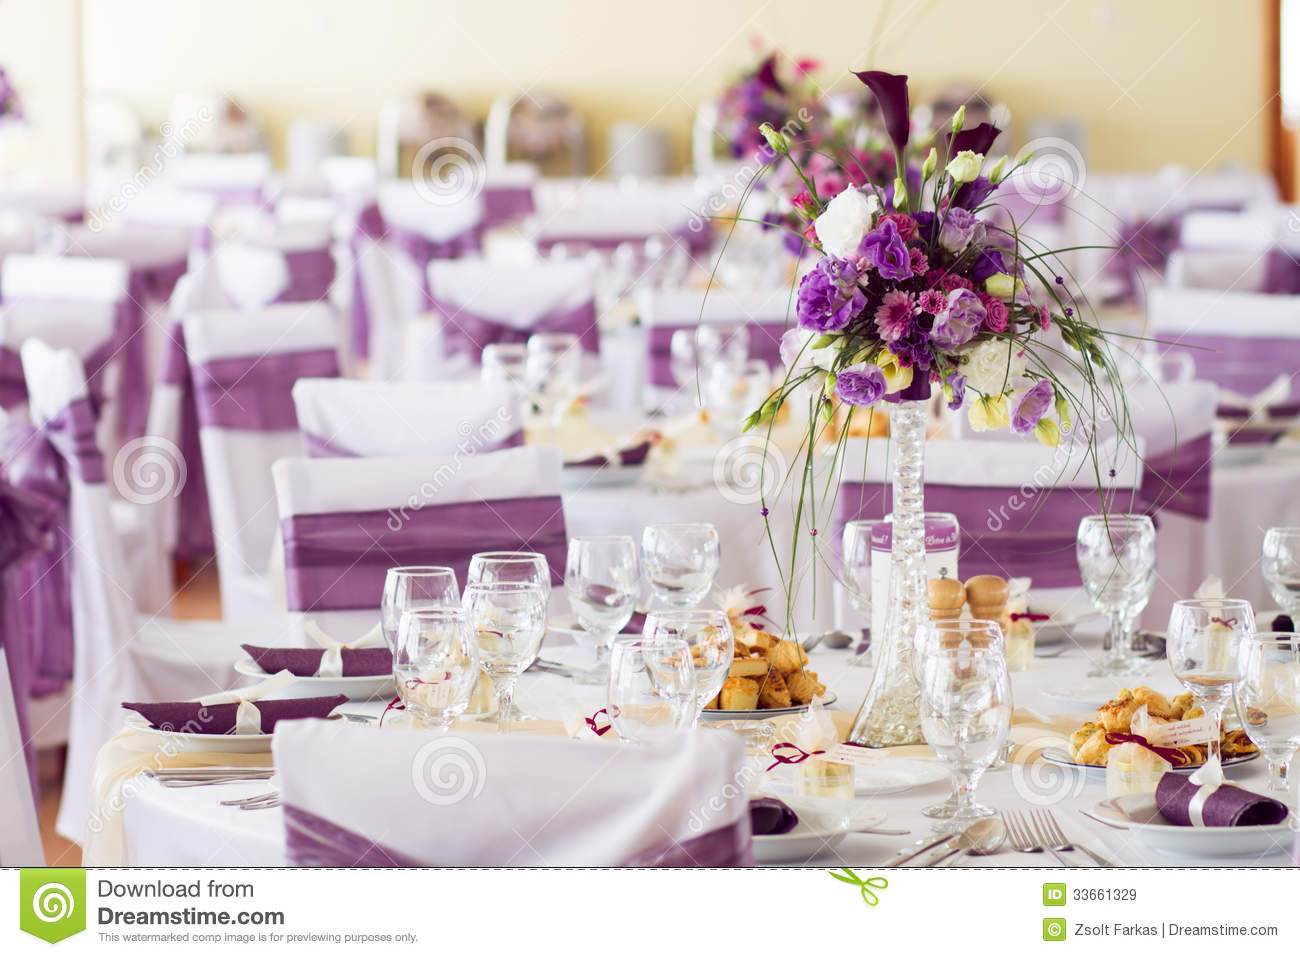 Wedding Table Decoration With Flowers Stock Image Image Of Dine